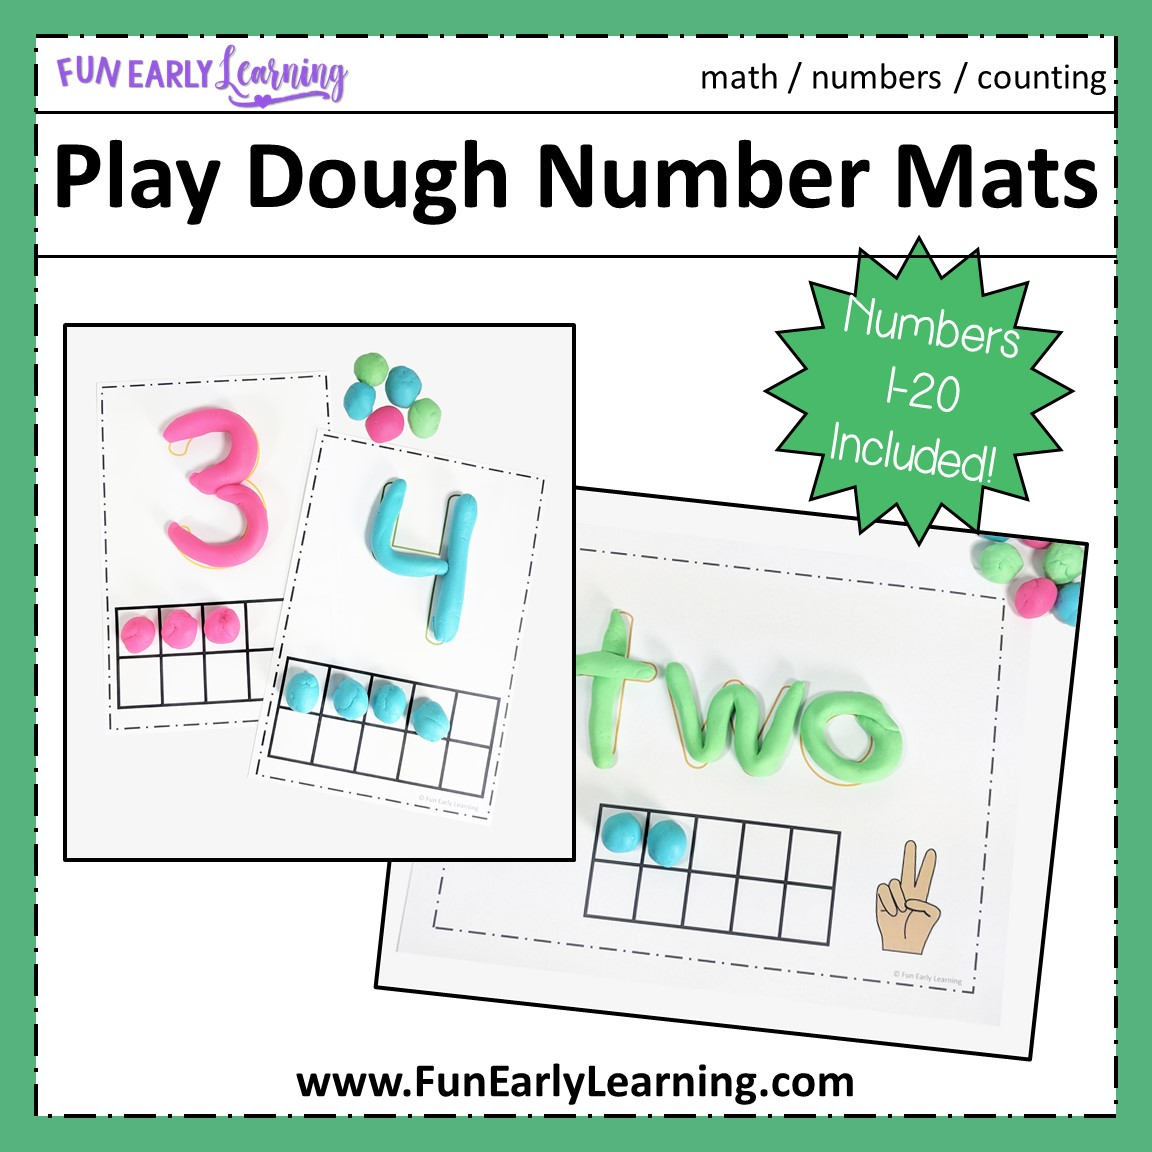 Play Dough Number Mats Kids Math Activity Hands On Printable For Learning Recognition